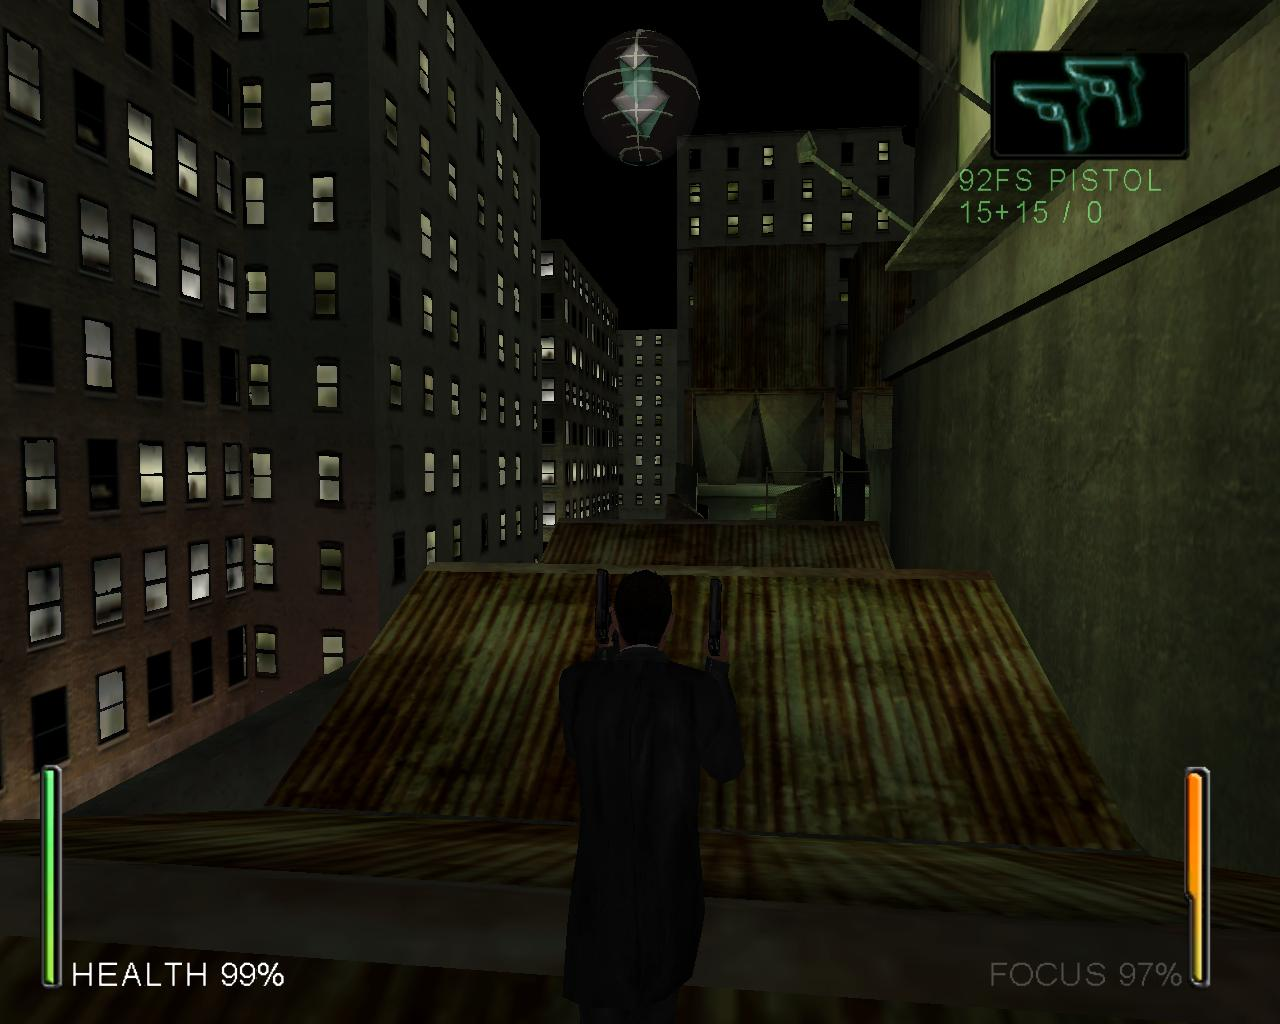 Enter The Matrix Review and Reflection | The Infinite Zenith